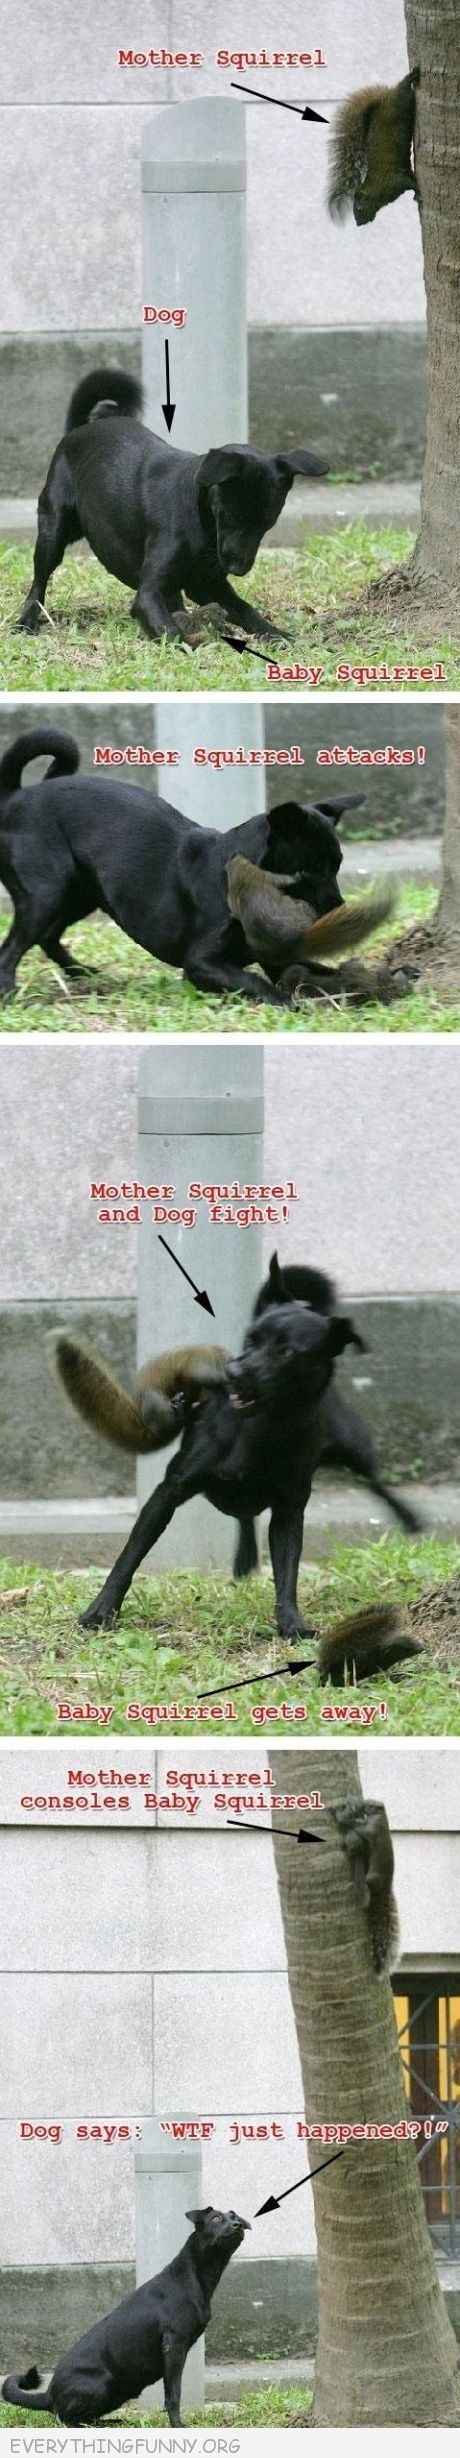 I do not like squirrels but this is pretty much an awesome example about how awesome mama love is. Also I hope it didnt have rabies.